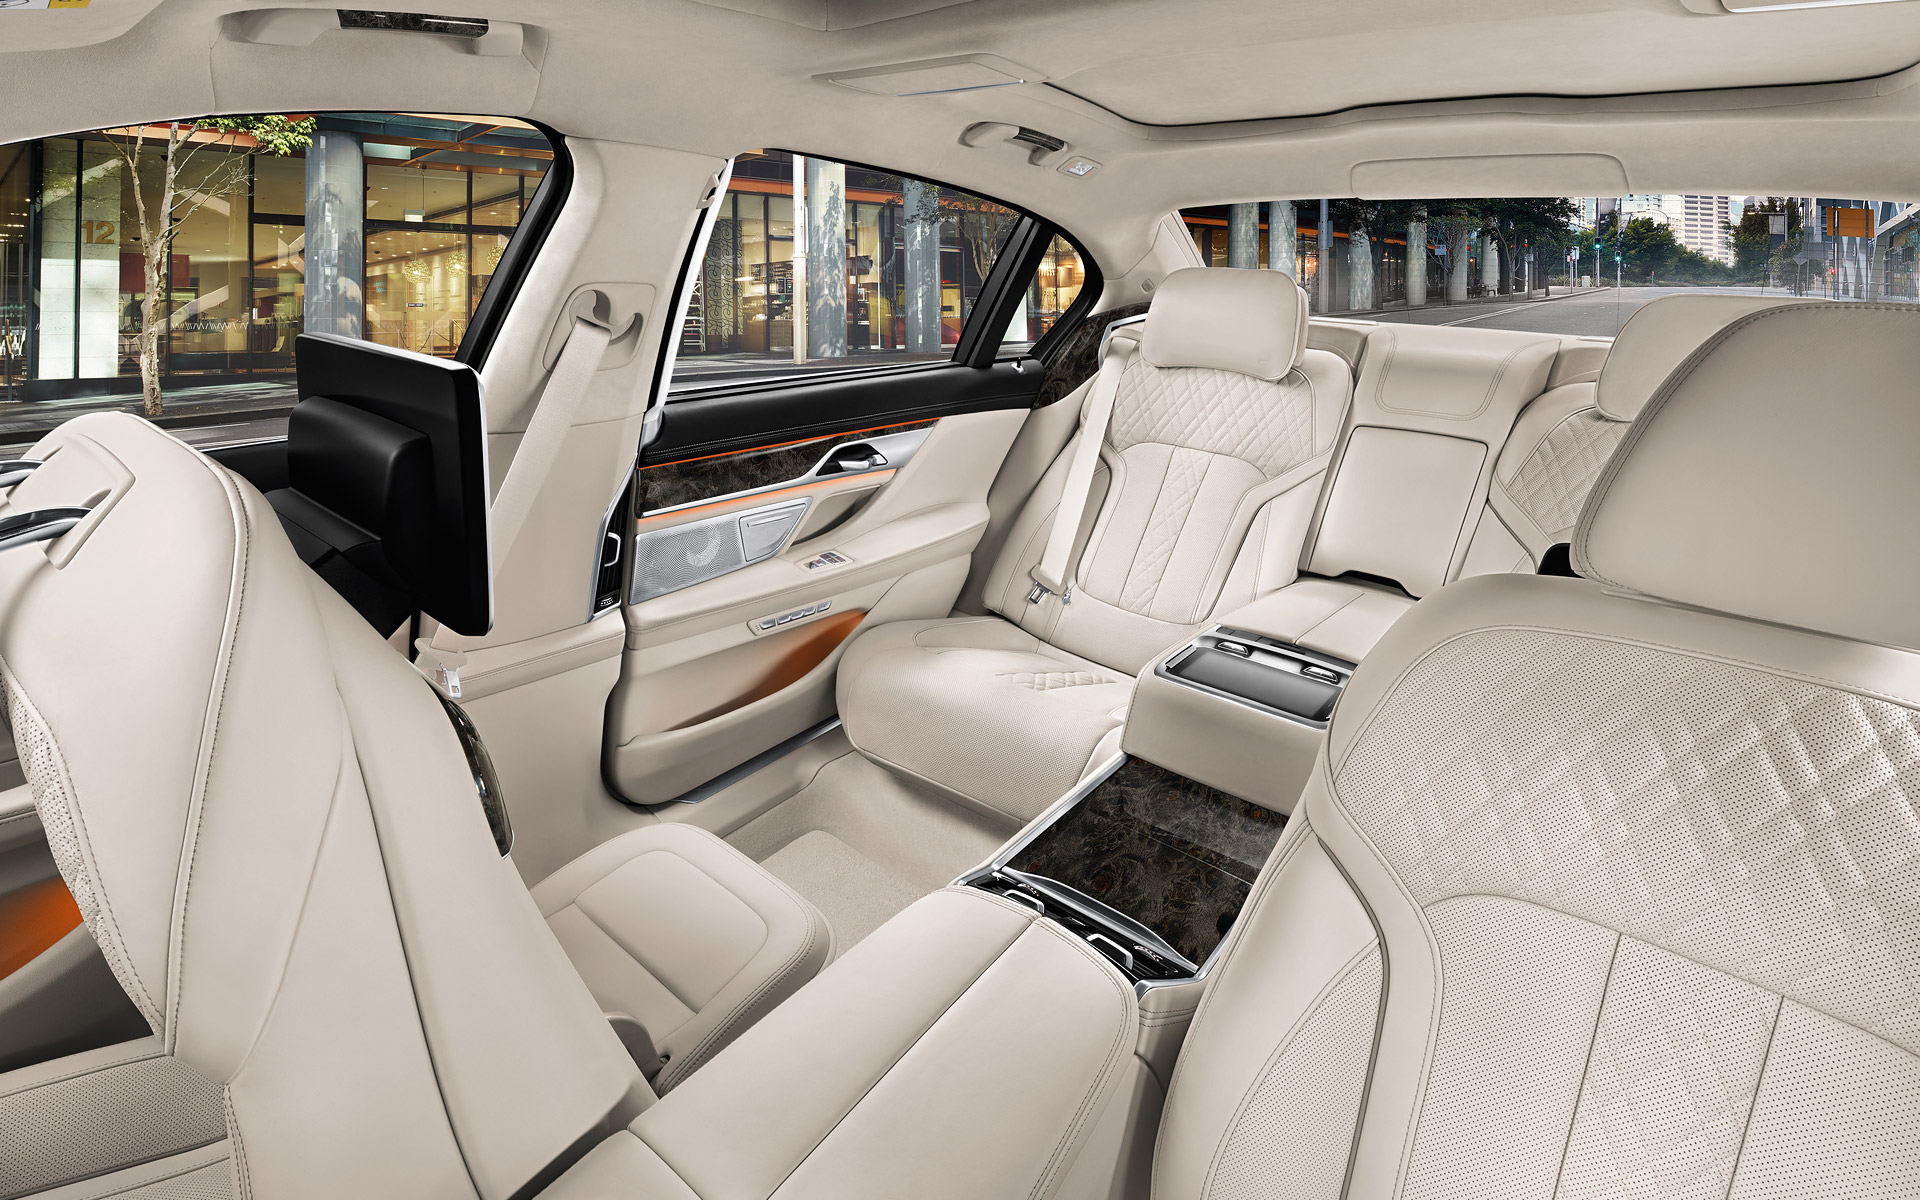 amazing-design-of-the-white-seats-ideas-with-white-ceiling-as-the-bmw-7-series-2015-interior